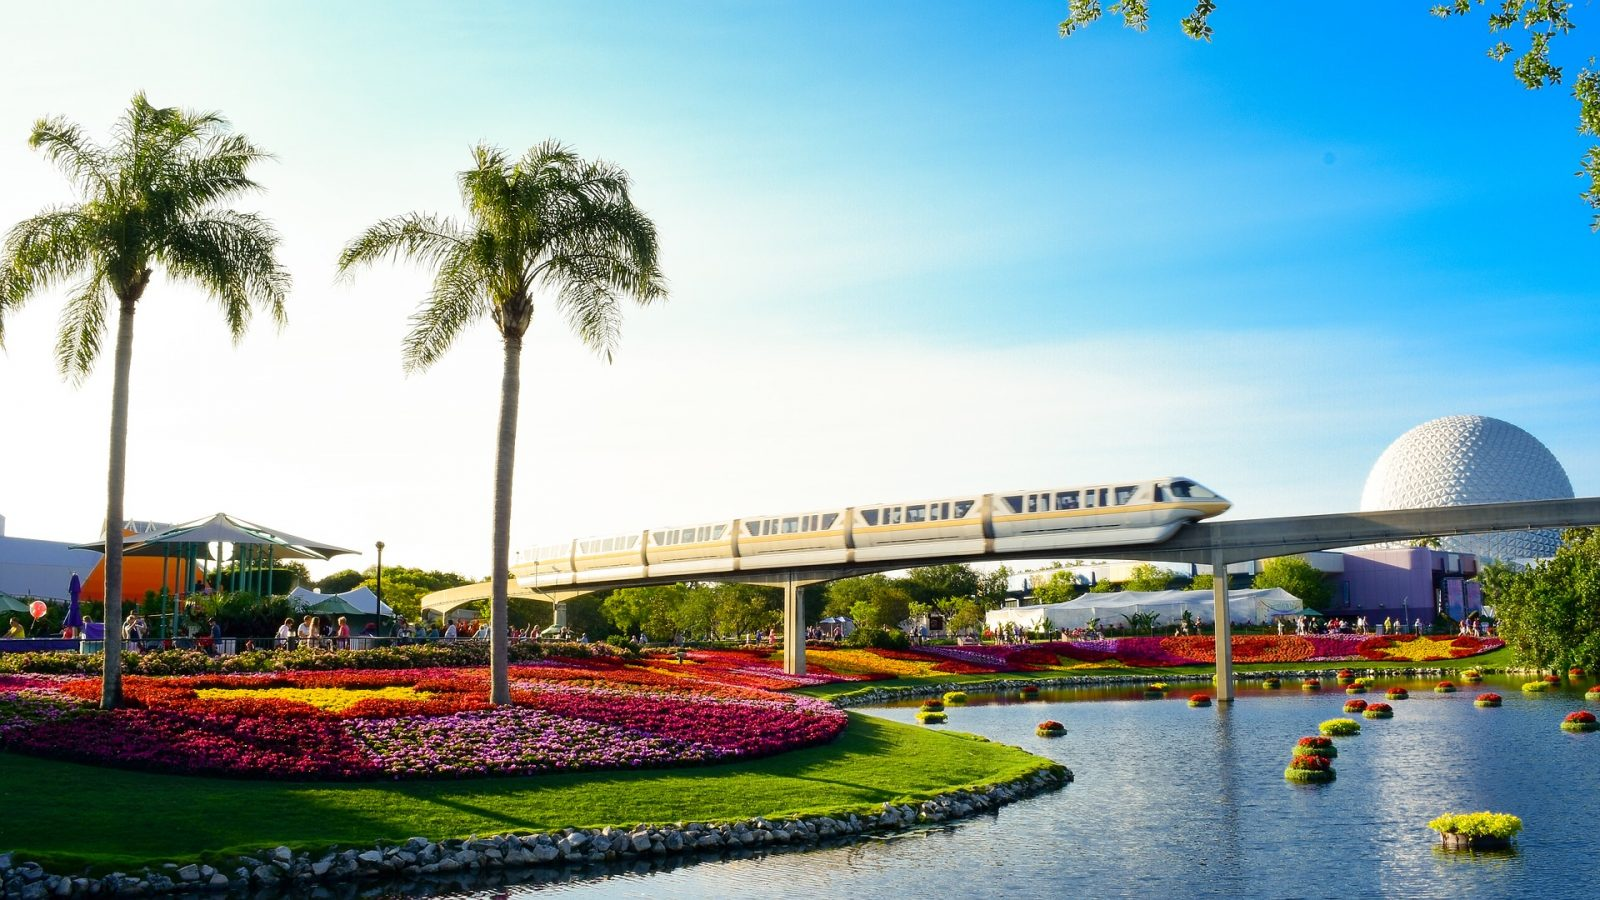 What to do in Orlando: The Walt Disney Monorail